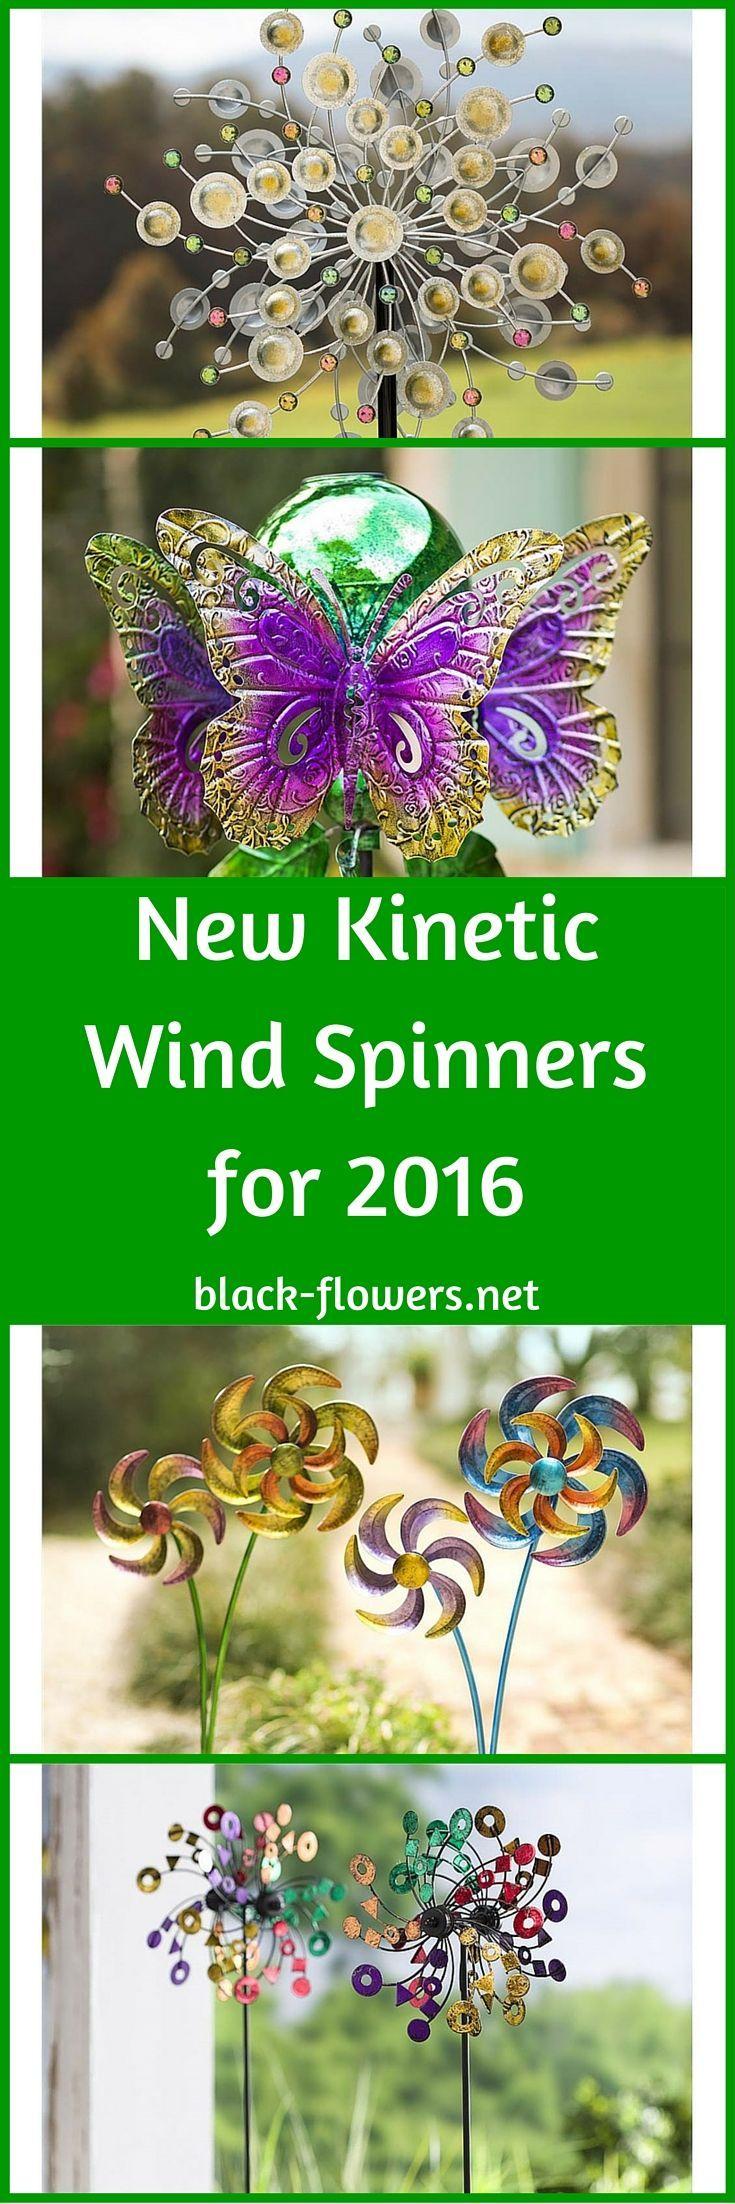 New Kinetic Wind Spinners for 2016